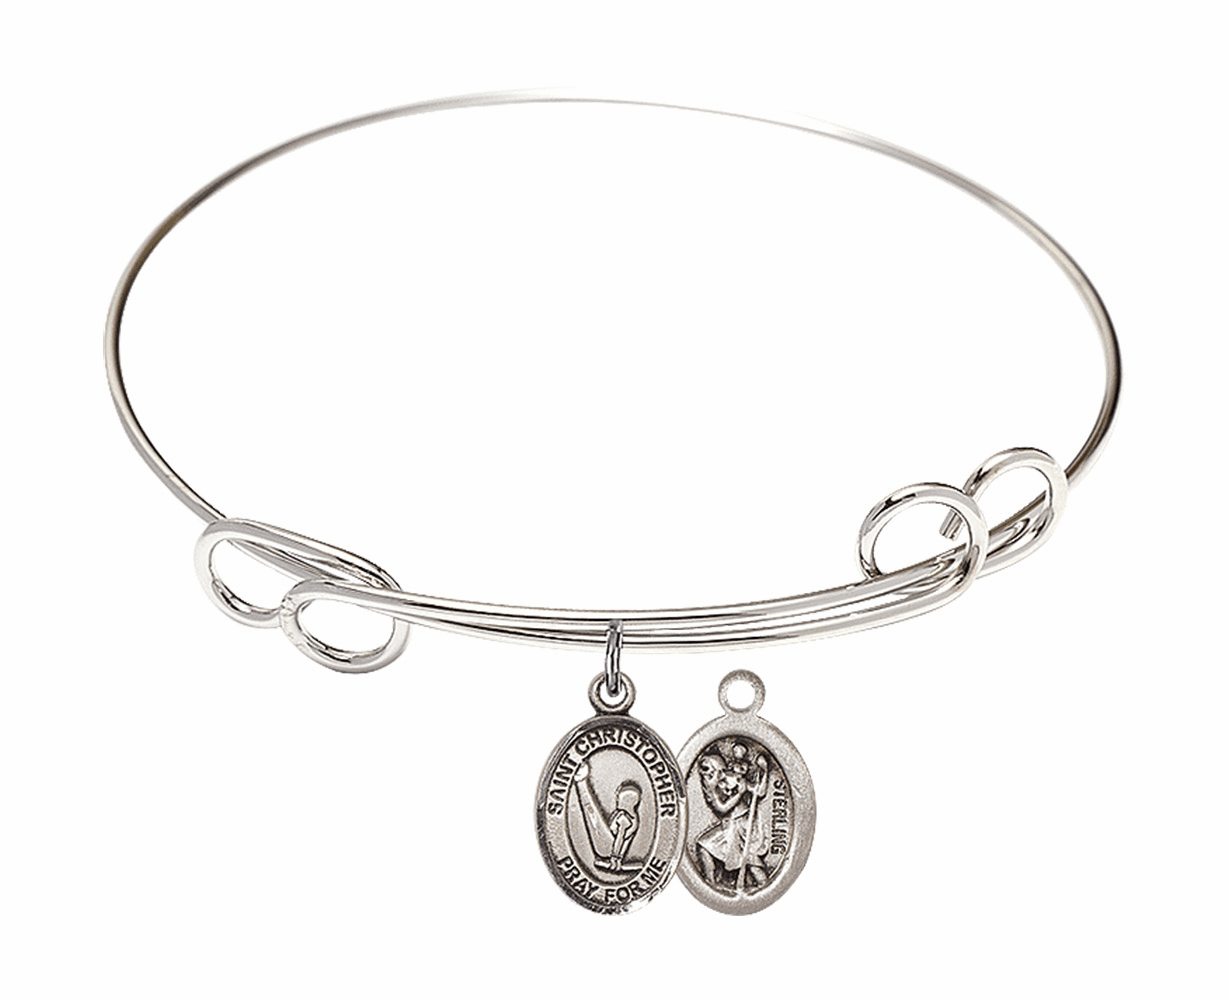 Round Loop St Christopher Gymnastics Bangle Charm Bracelet by Bliss